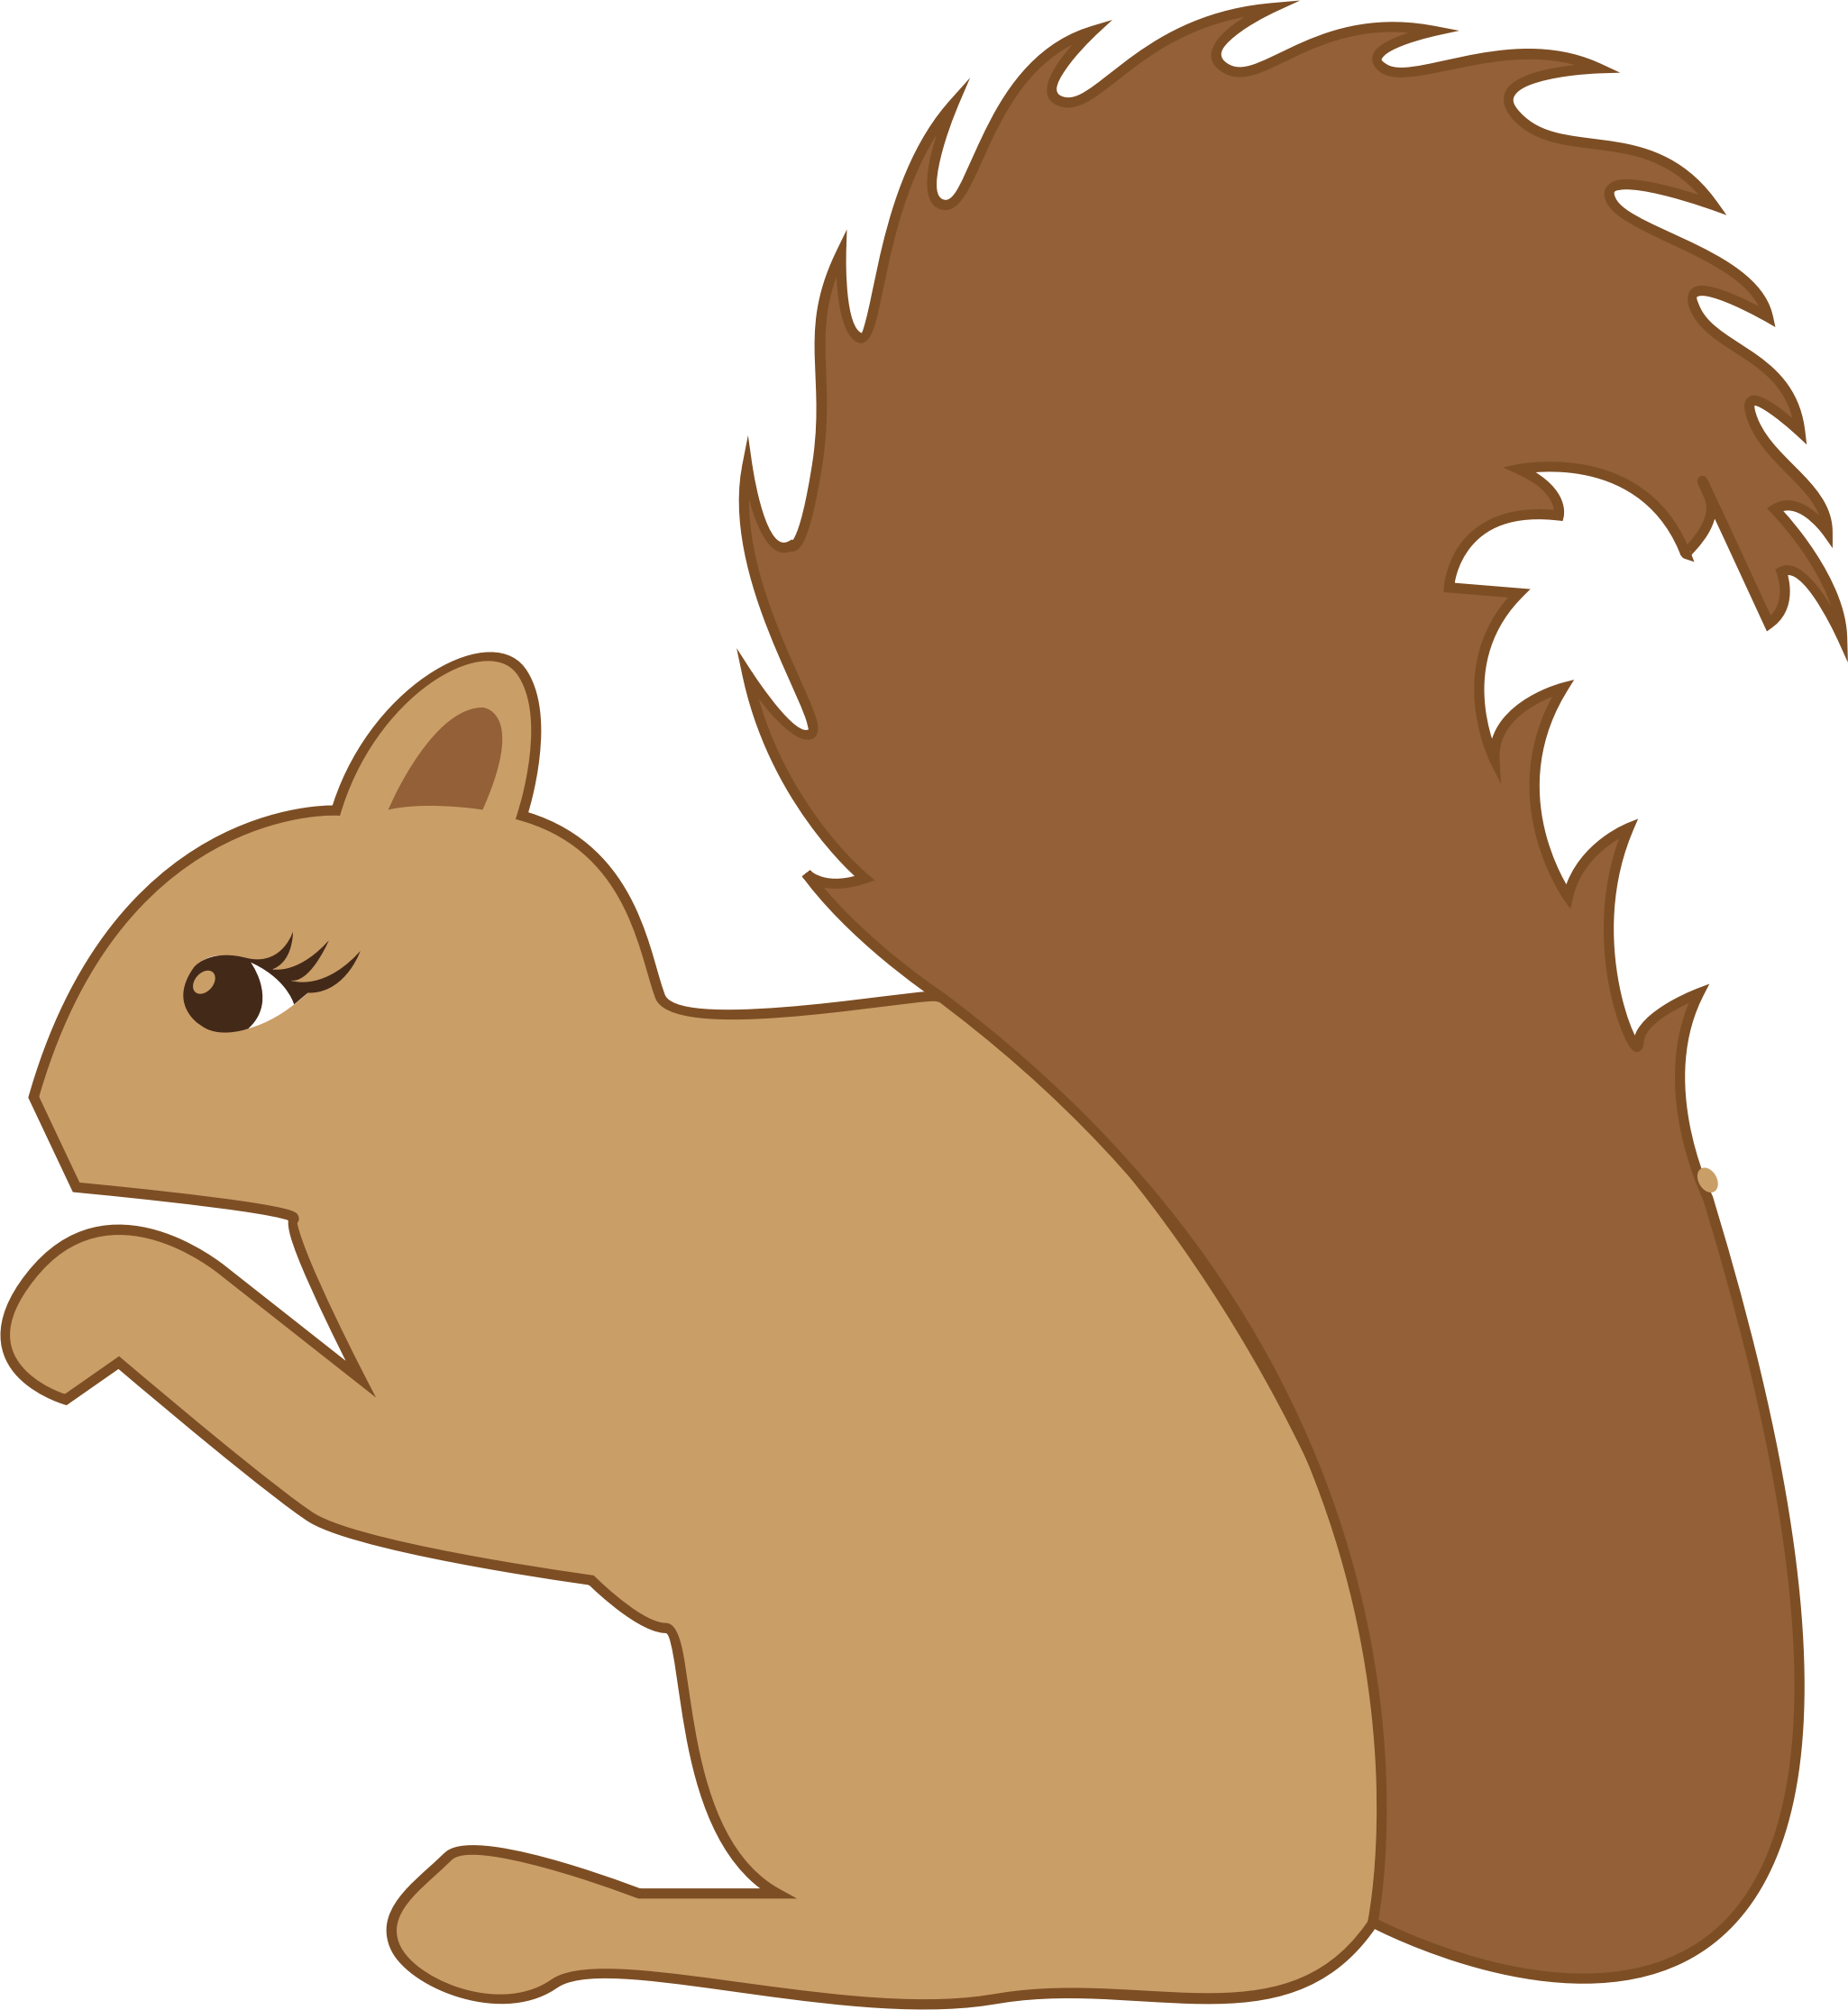 Profile big image png. Woodland clipart squirrel